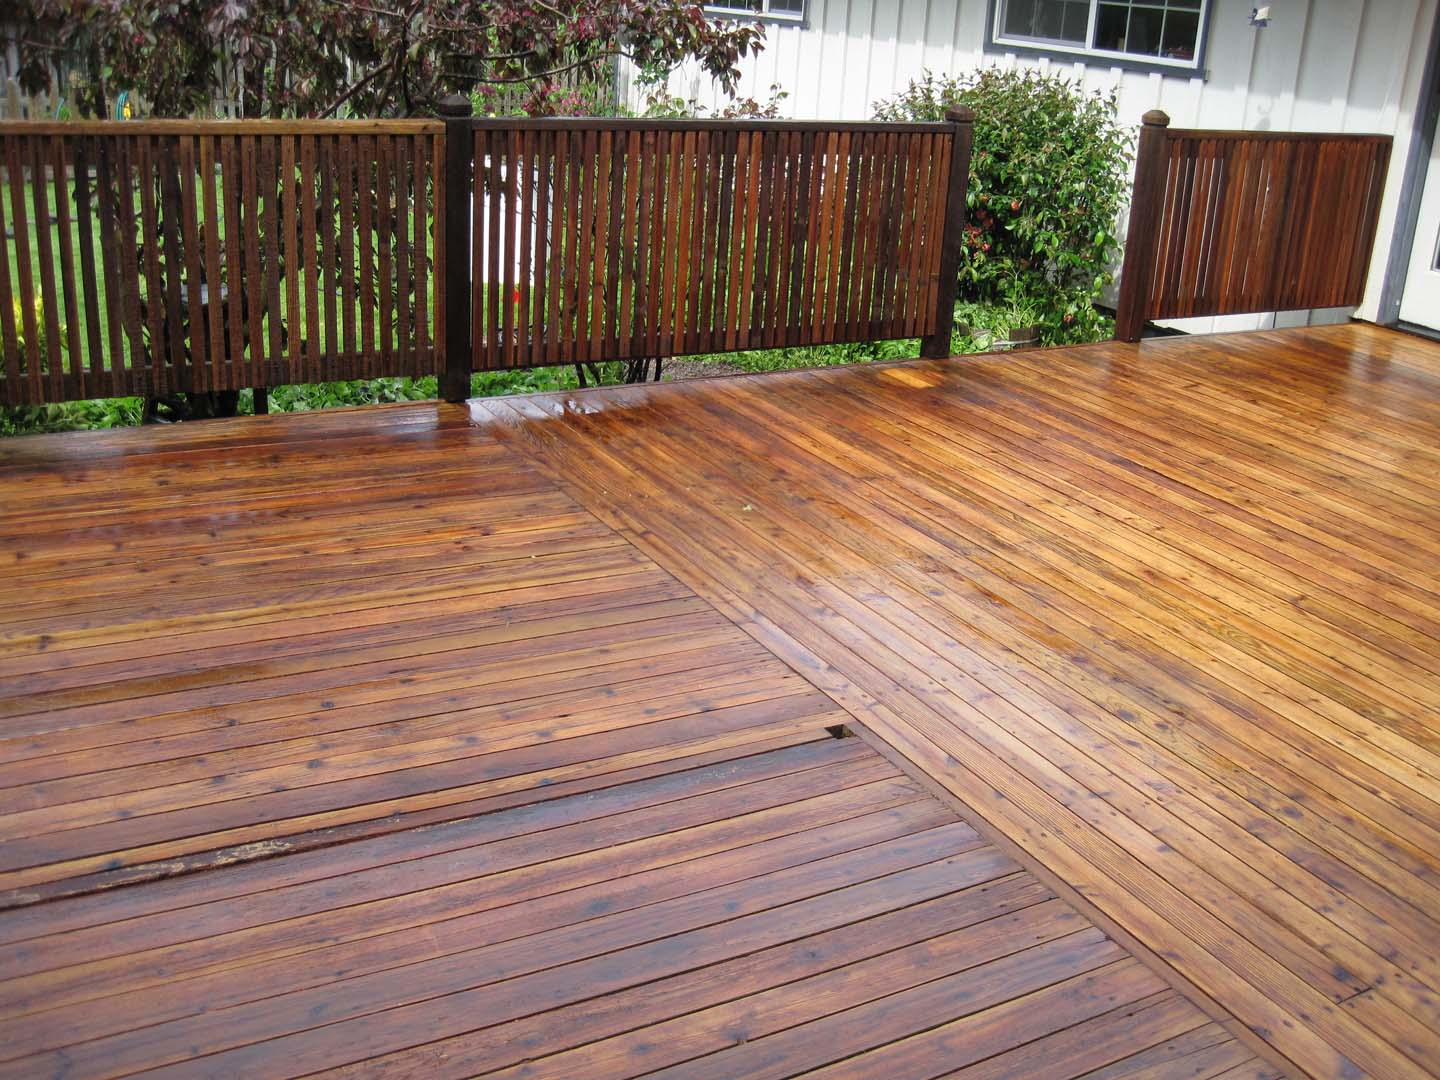 New Decks and Deck Restoration